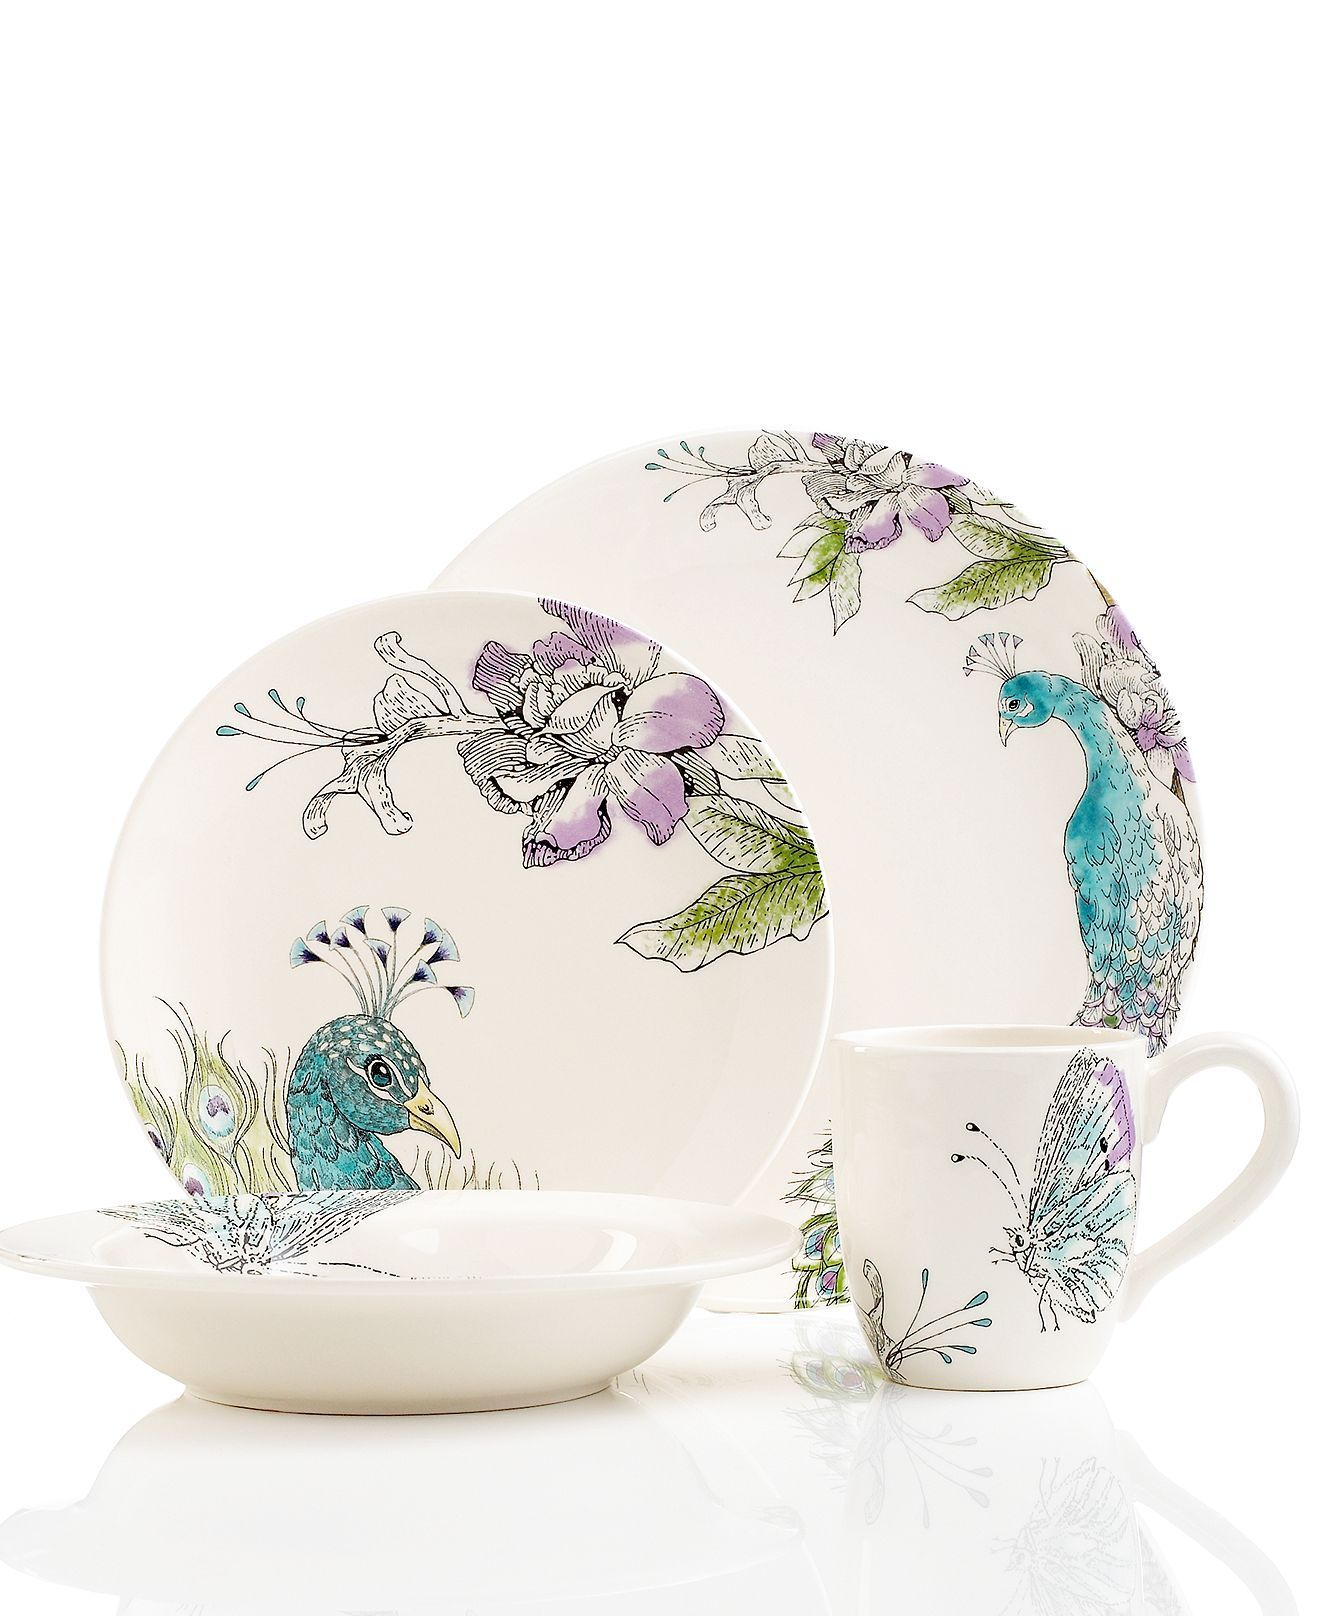 Edie Rose by Rachel Bilson CLOSEOUT! Dinnerware, Peacock 4 Piece Place Setting & Reviews - Dinnerware - Dining - Macy's -  Edie Rose by Rachel Bilson Dinnerware, Peacock 4 Piece Place Setting – Casual Dinnerware – Dini - #Bilson #CLOSEOUT #DianeKruger #Dining #Dinnerware #Edie #KendallJennerOutfits #KimKardashian #Macys #peacock #Piece #Place #Rachel #RachelBilson #Reviews #Rose #SarahJessicaParker #Setting